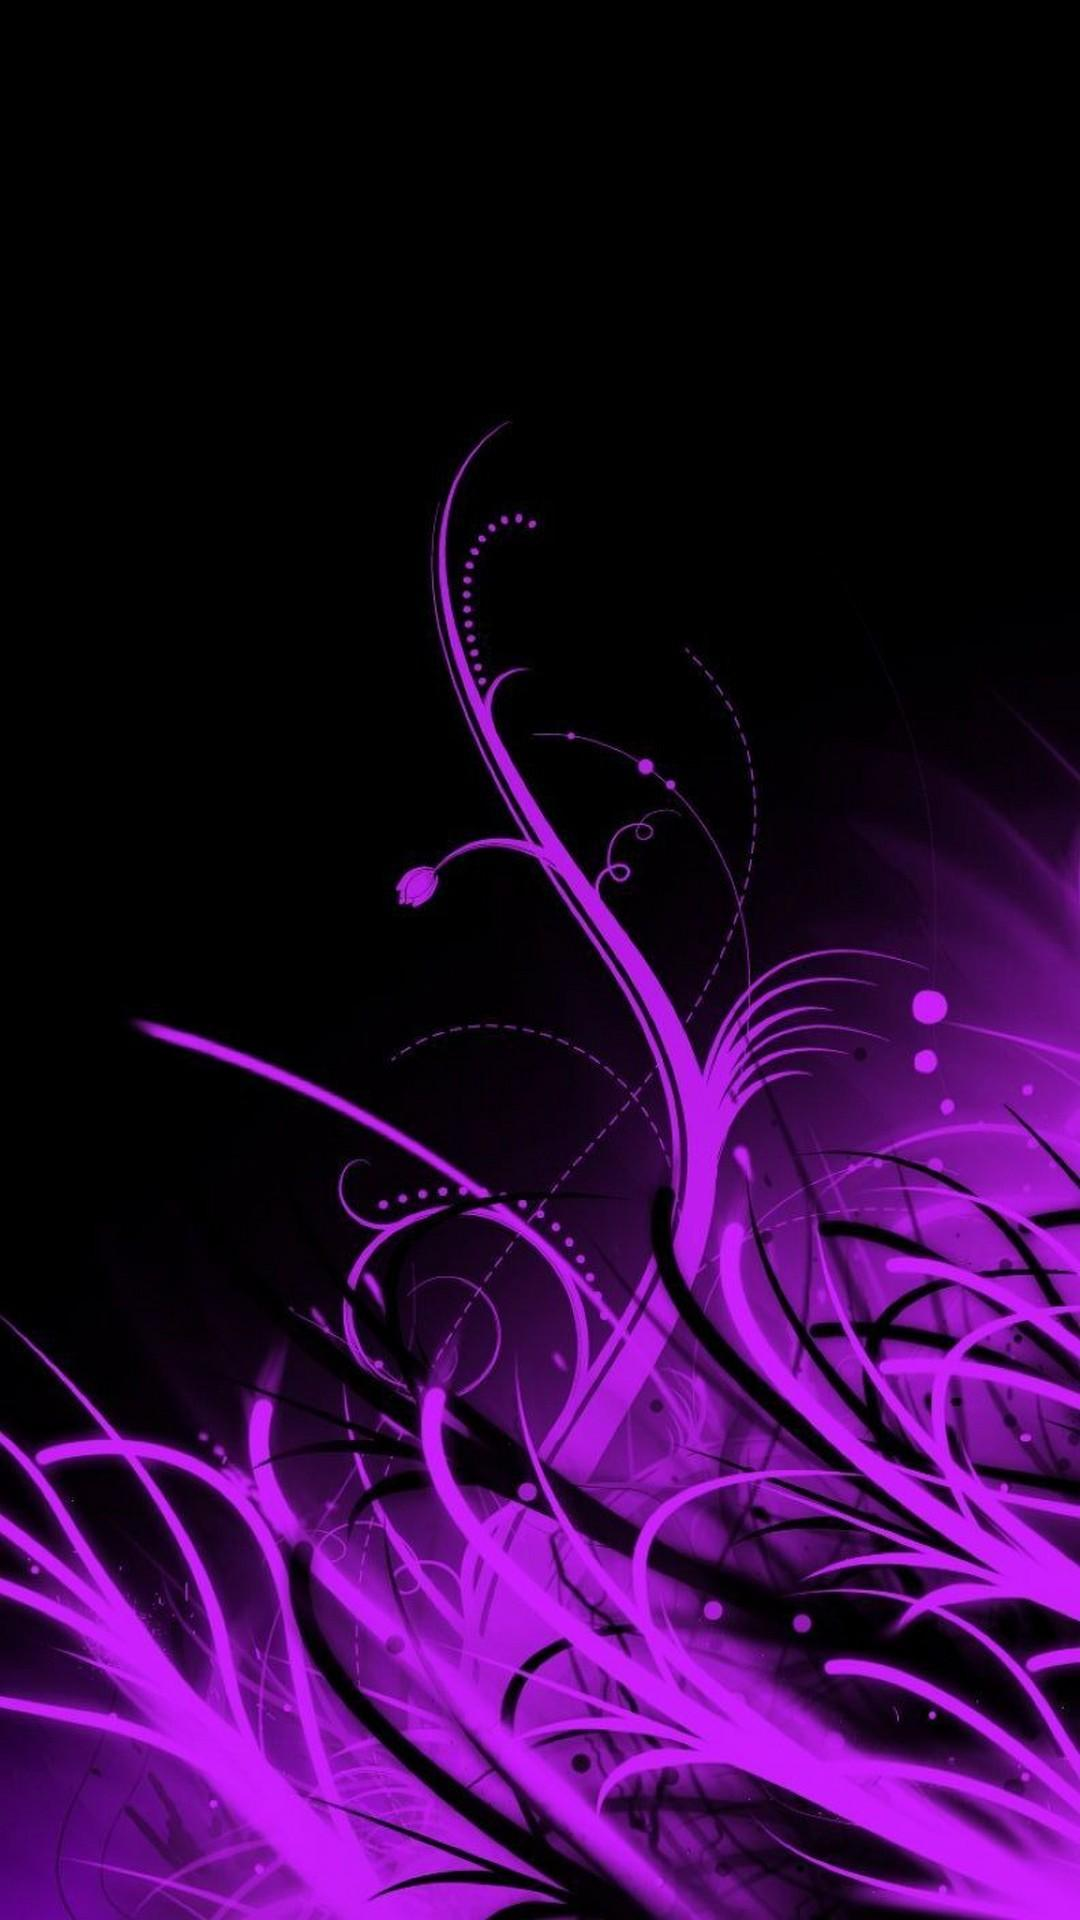 Iphone Purple Wallpapers Kolpaper Awesome Free Hd Wallpapers